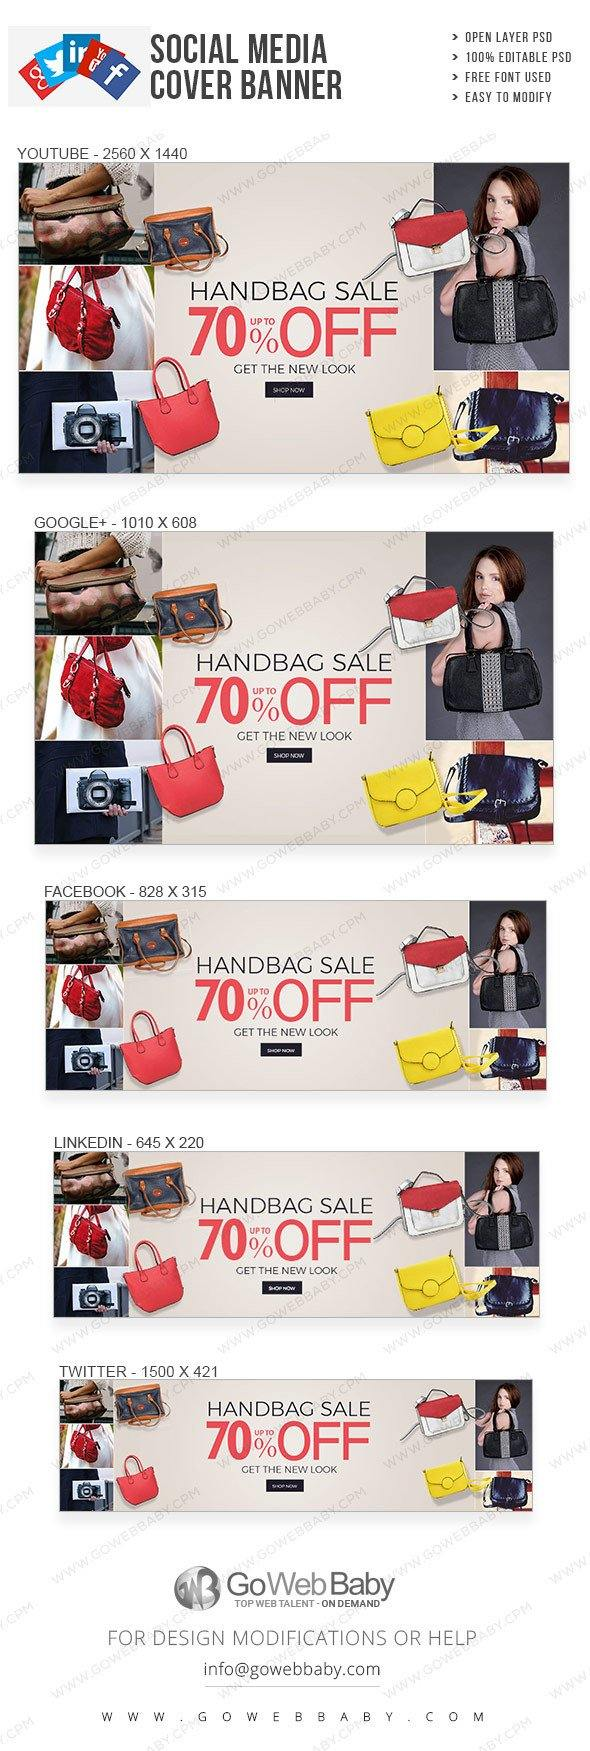 Social Media Cover Banner - Fashionable Handbags For Website Marketing